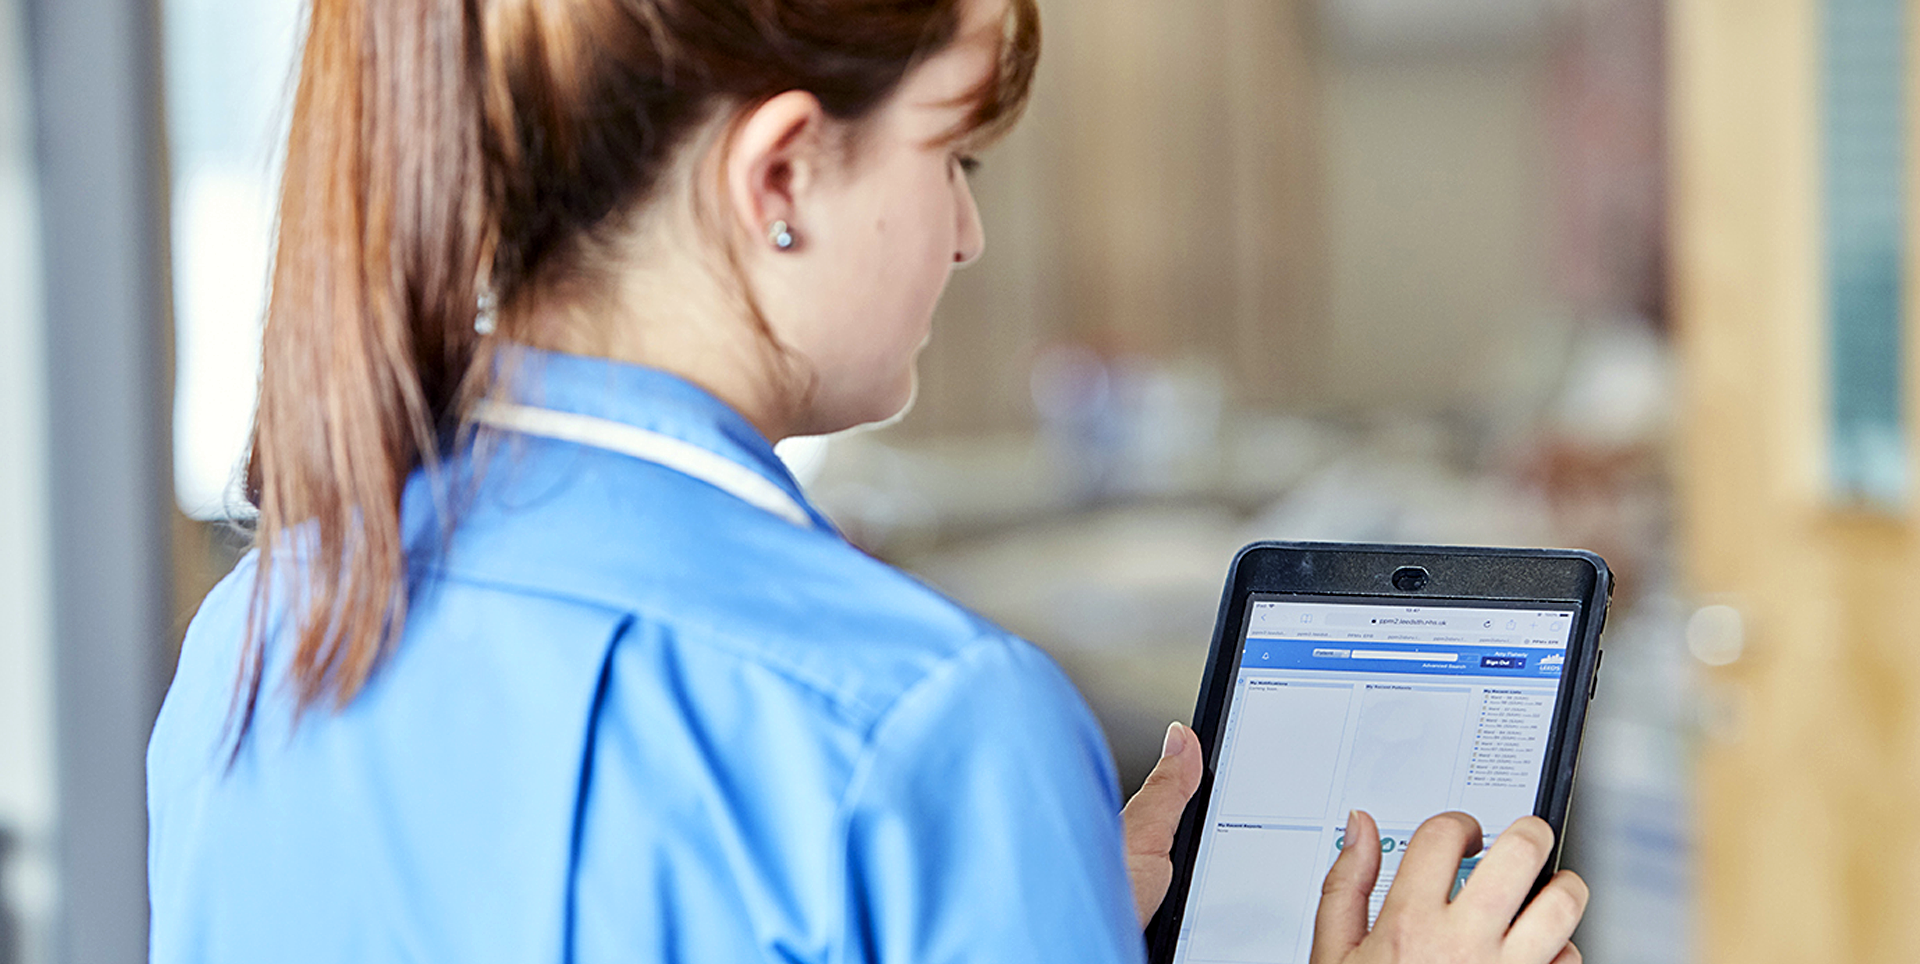 A nurse checks out additional information on a patient's Summary Care Record.